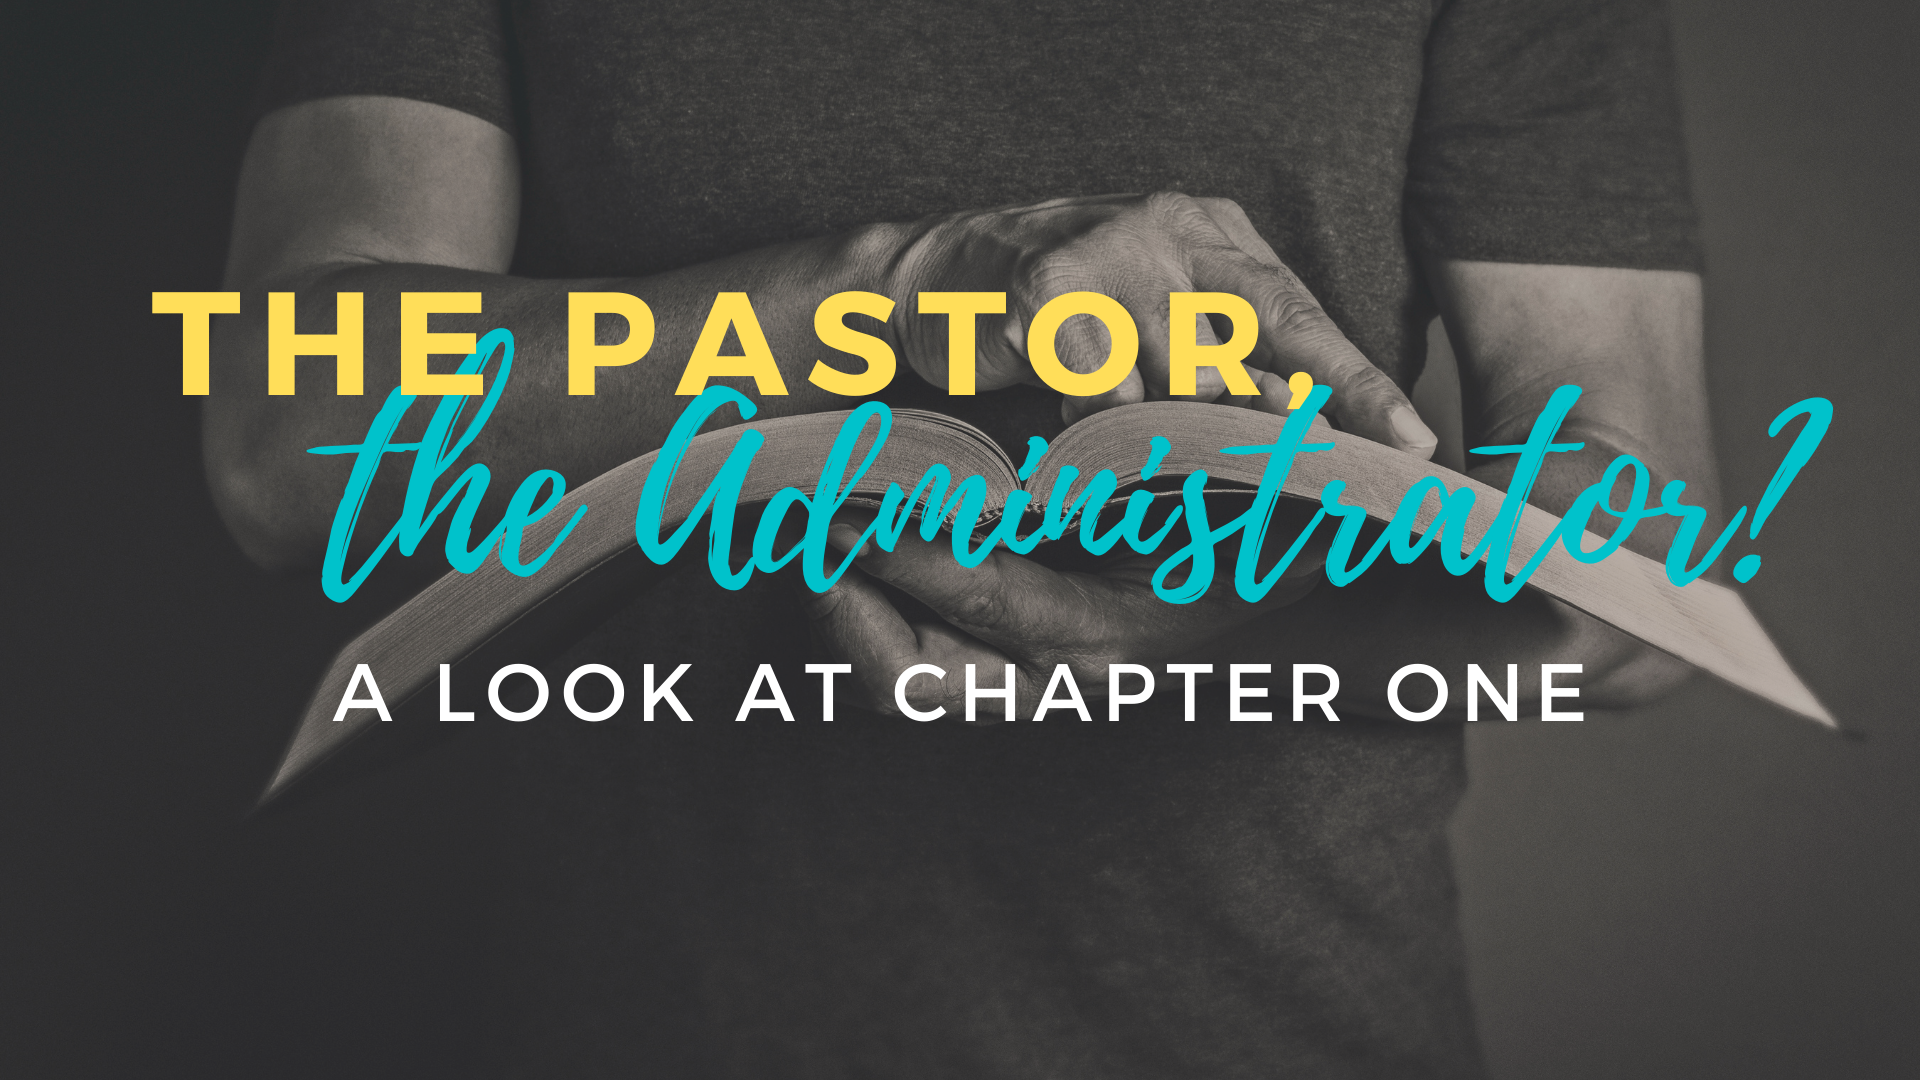 The Pastor, the Administrator?